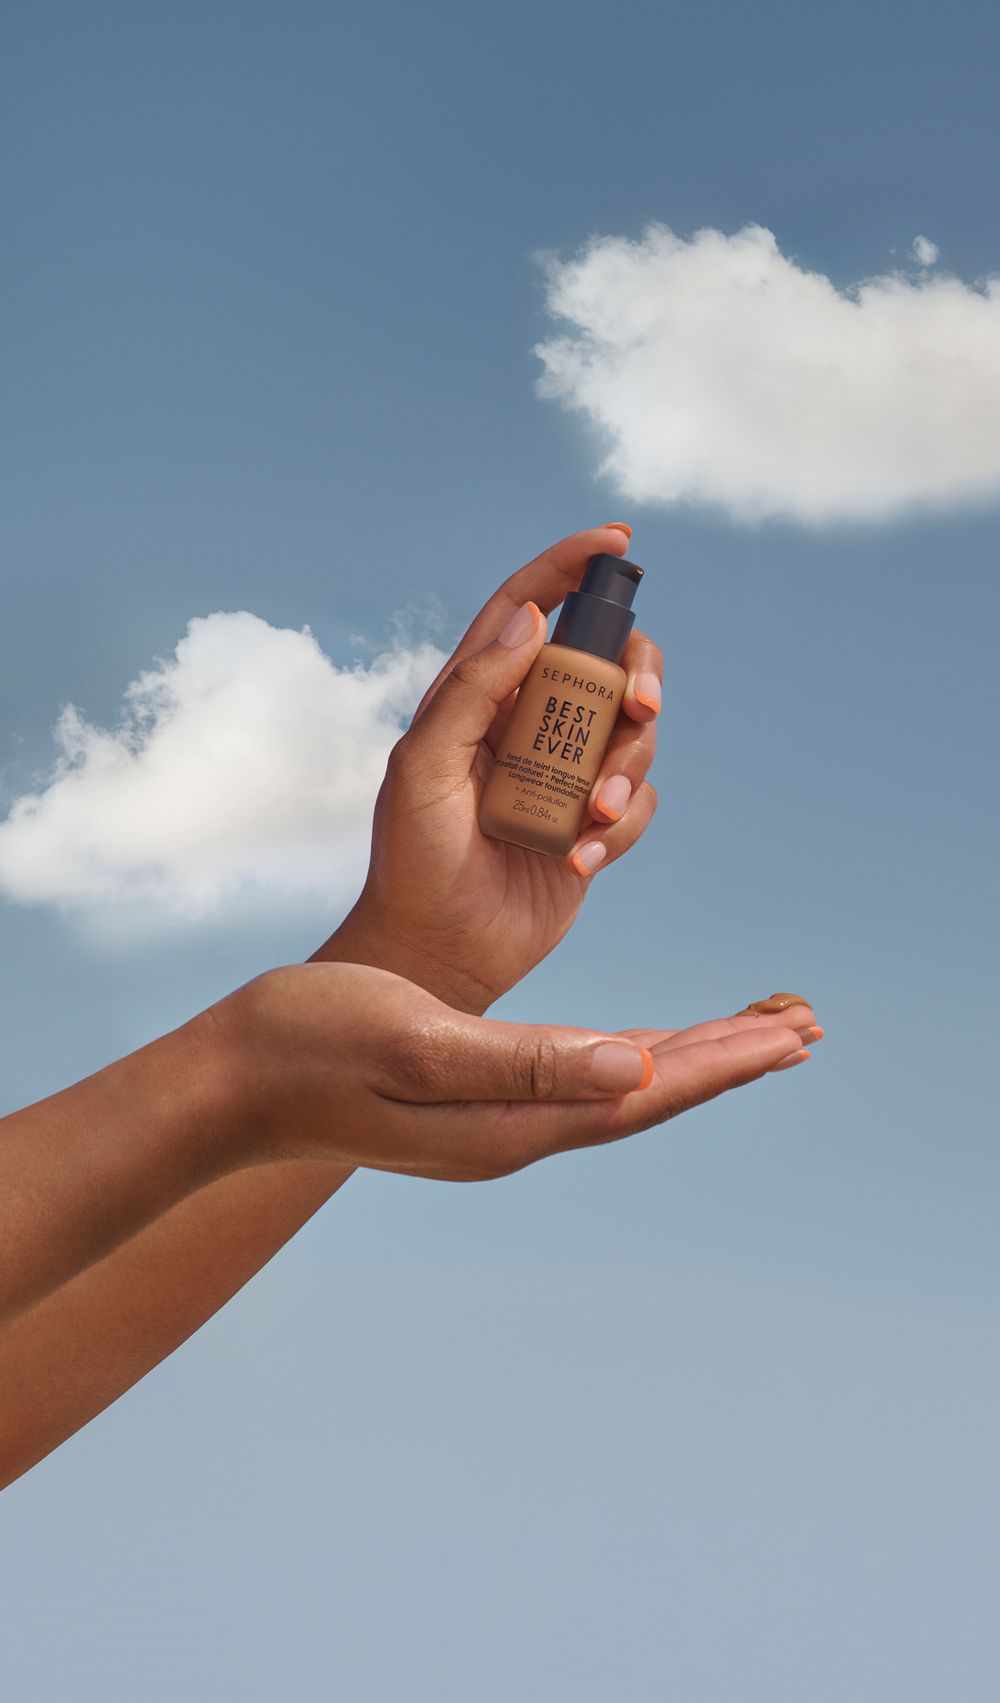 woman's hands hold make up bottle